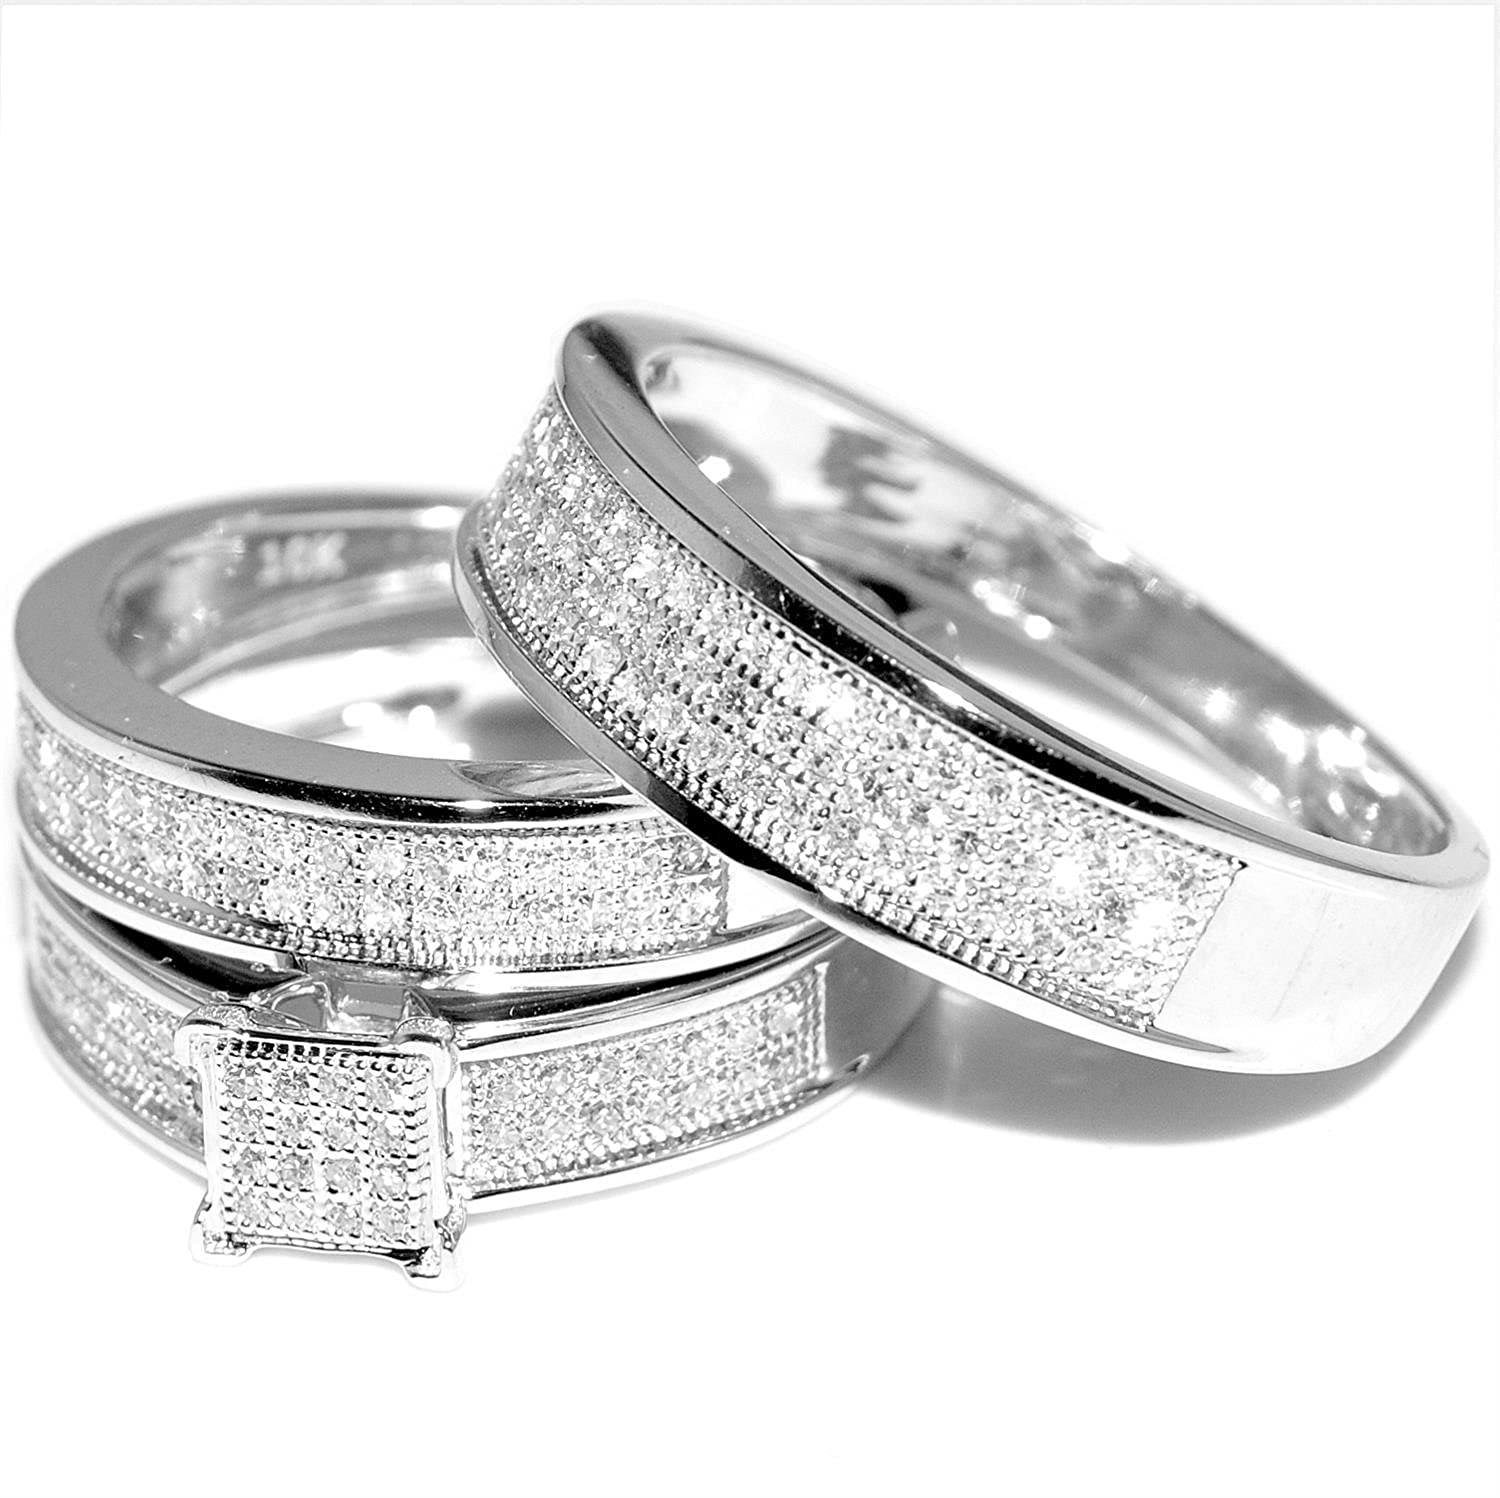 white gold trio wedding set mens womens wedding rings matching 040cttw diamondamazoncom - White Gold Wedding Rings For Women